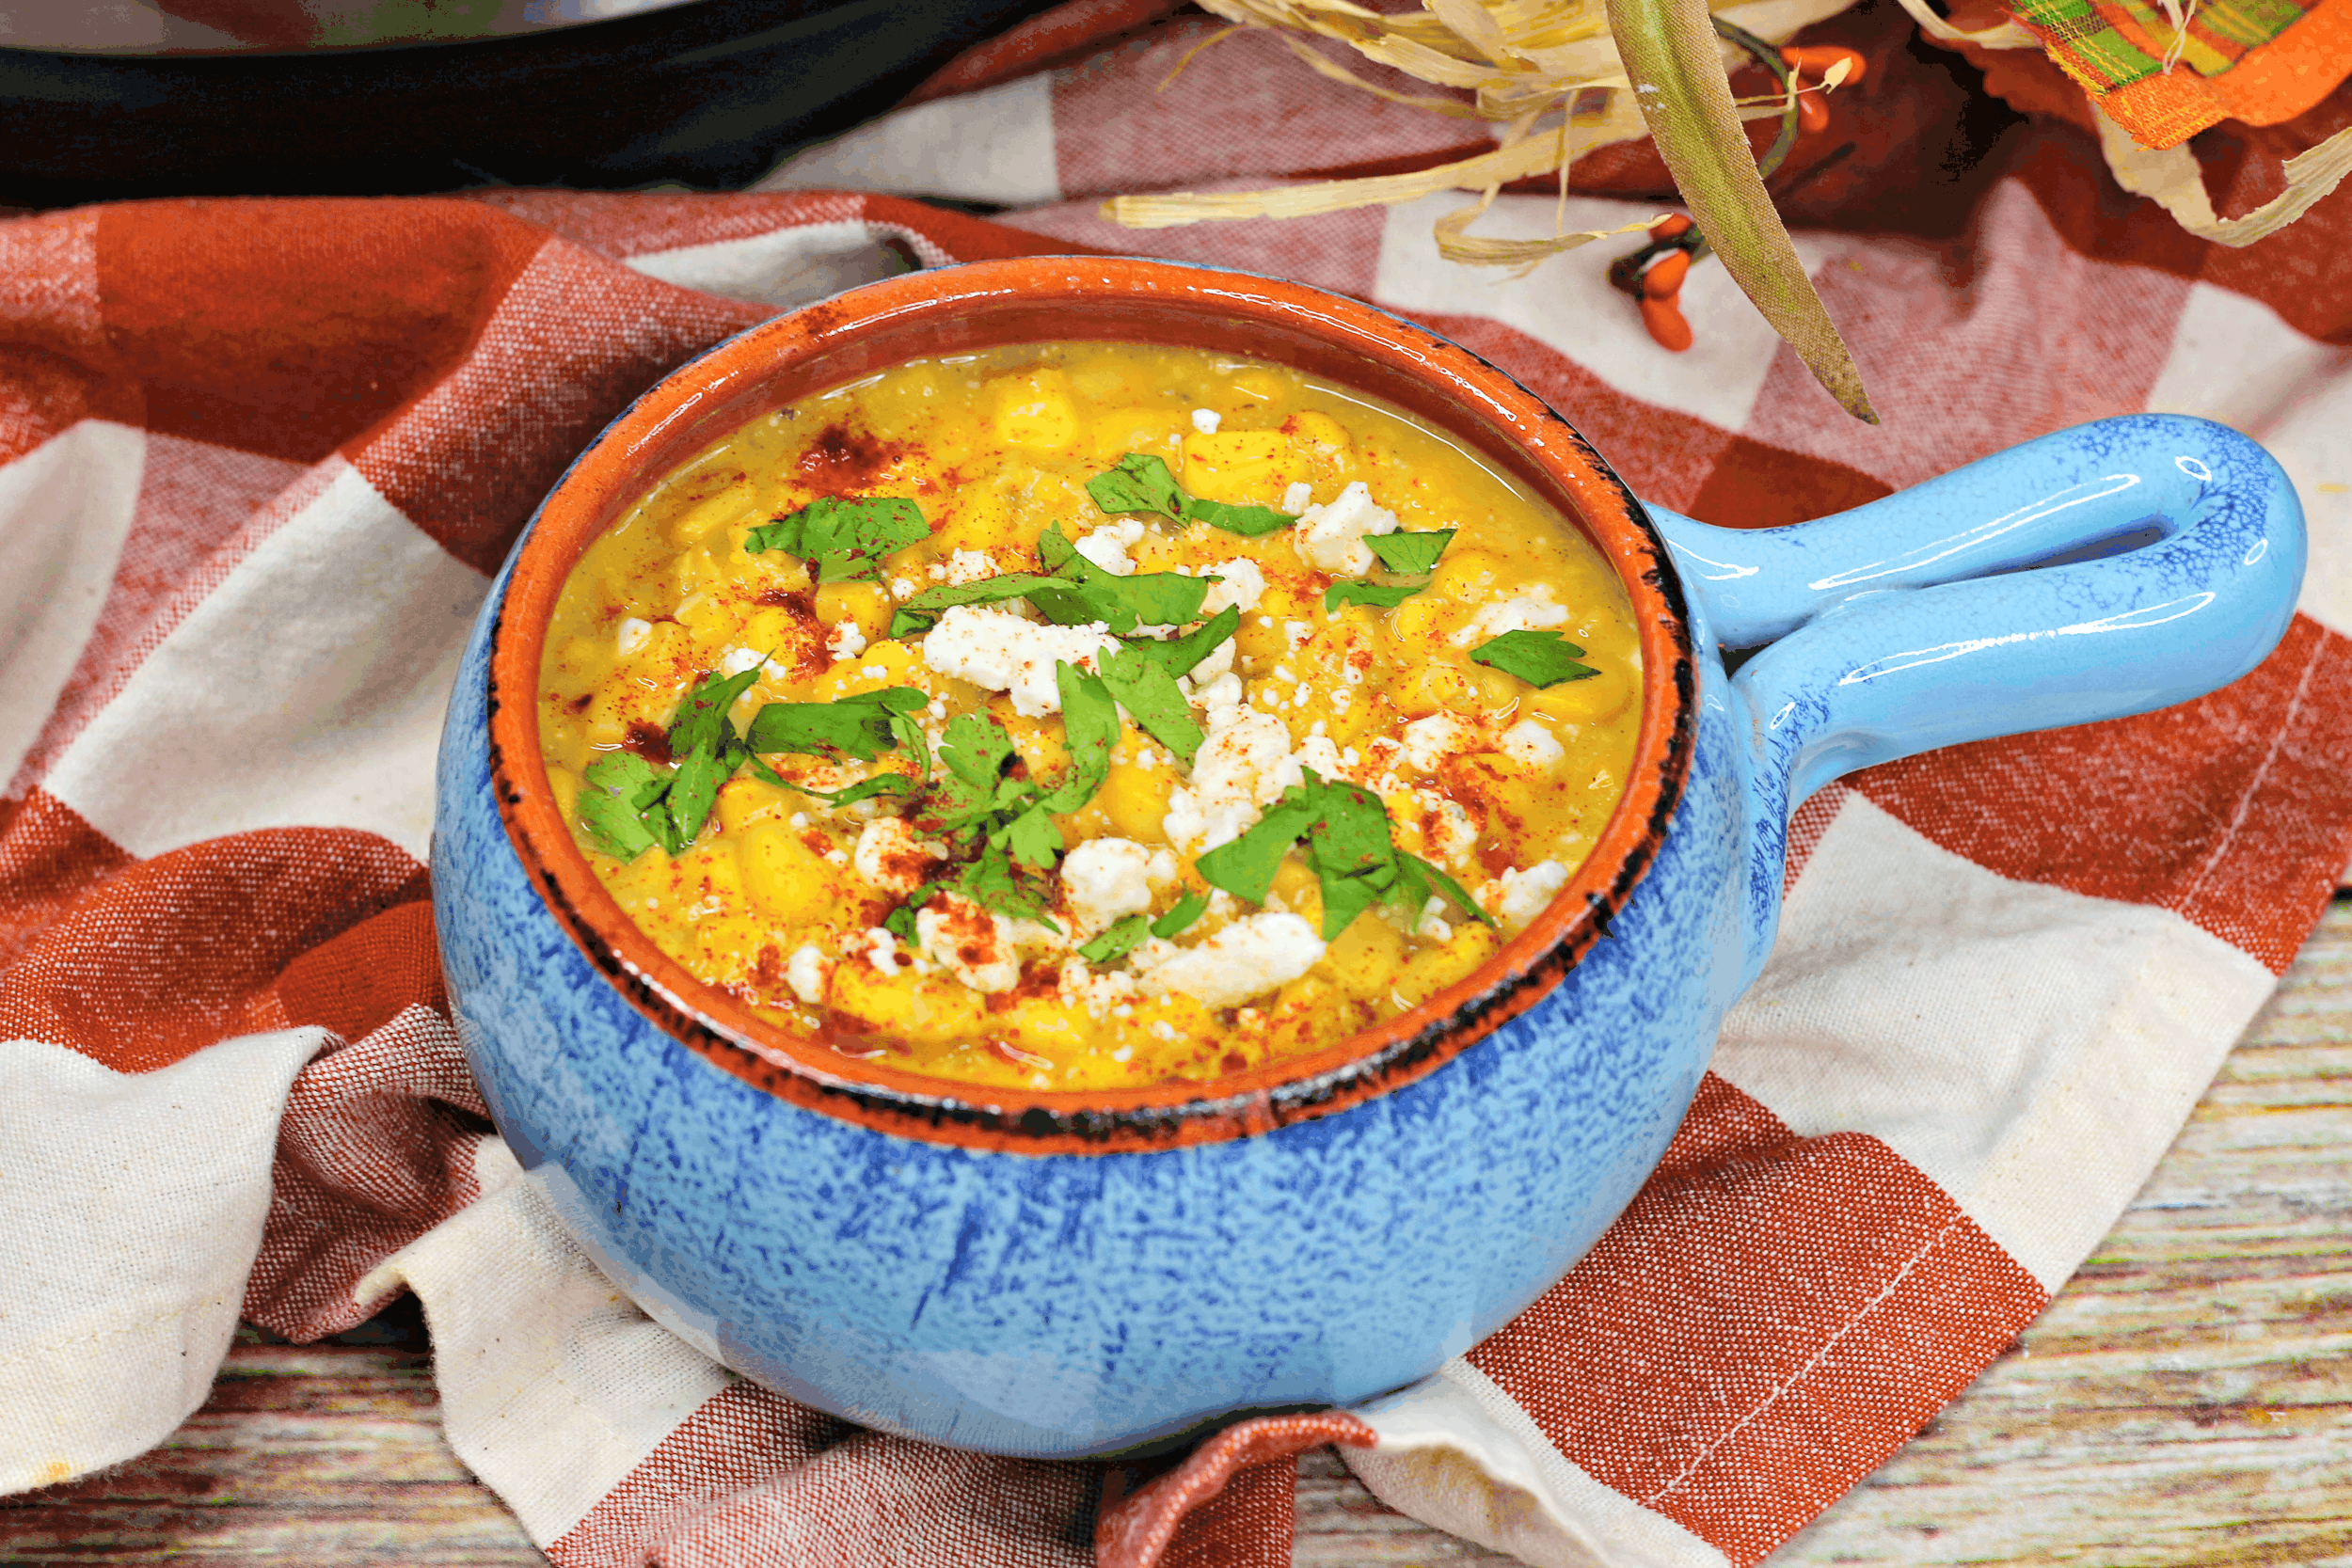 corn chowder recipe in blue bowl